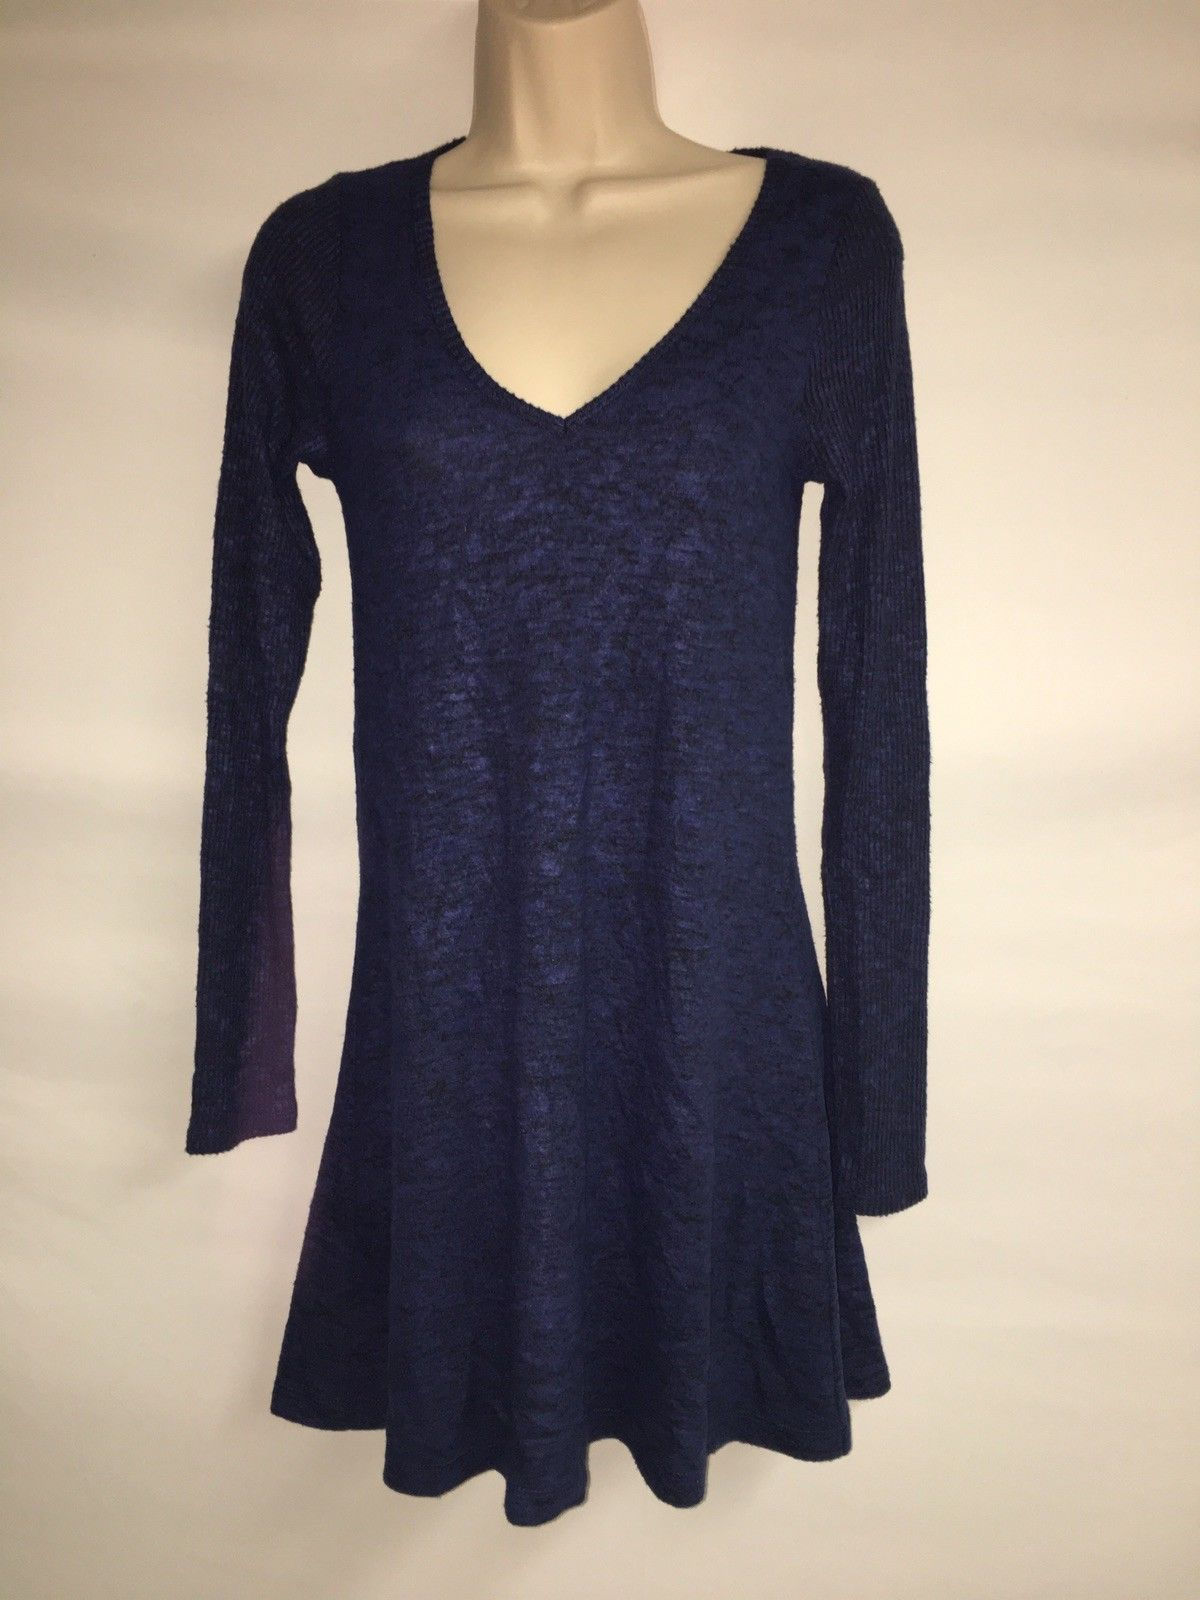 Express Dress Blue Multi Womens XS Long Sleeve NWT $59.9